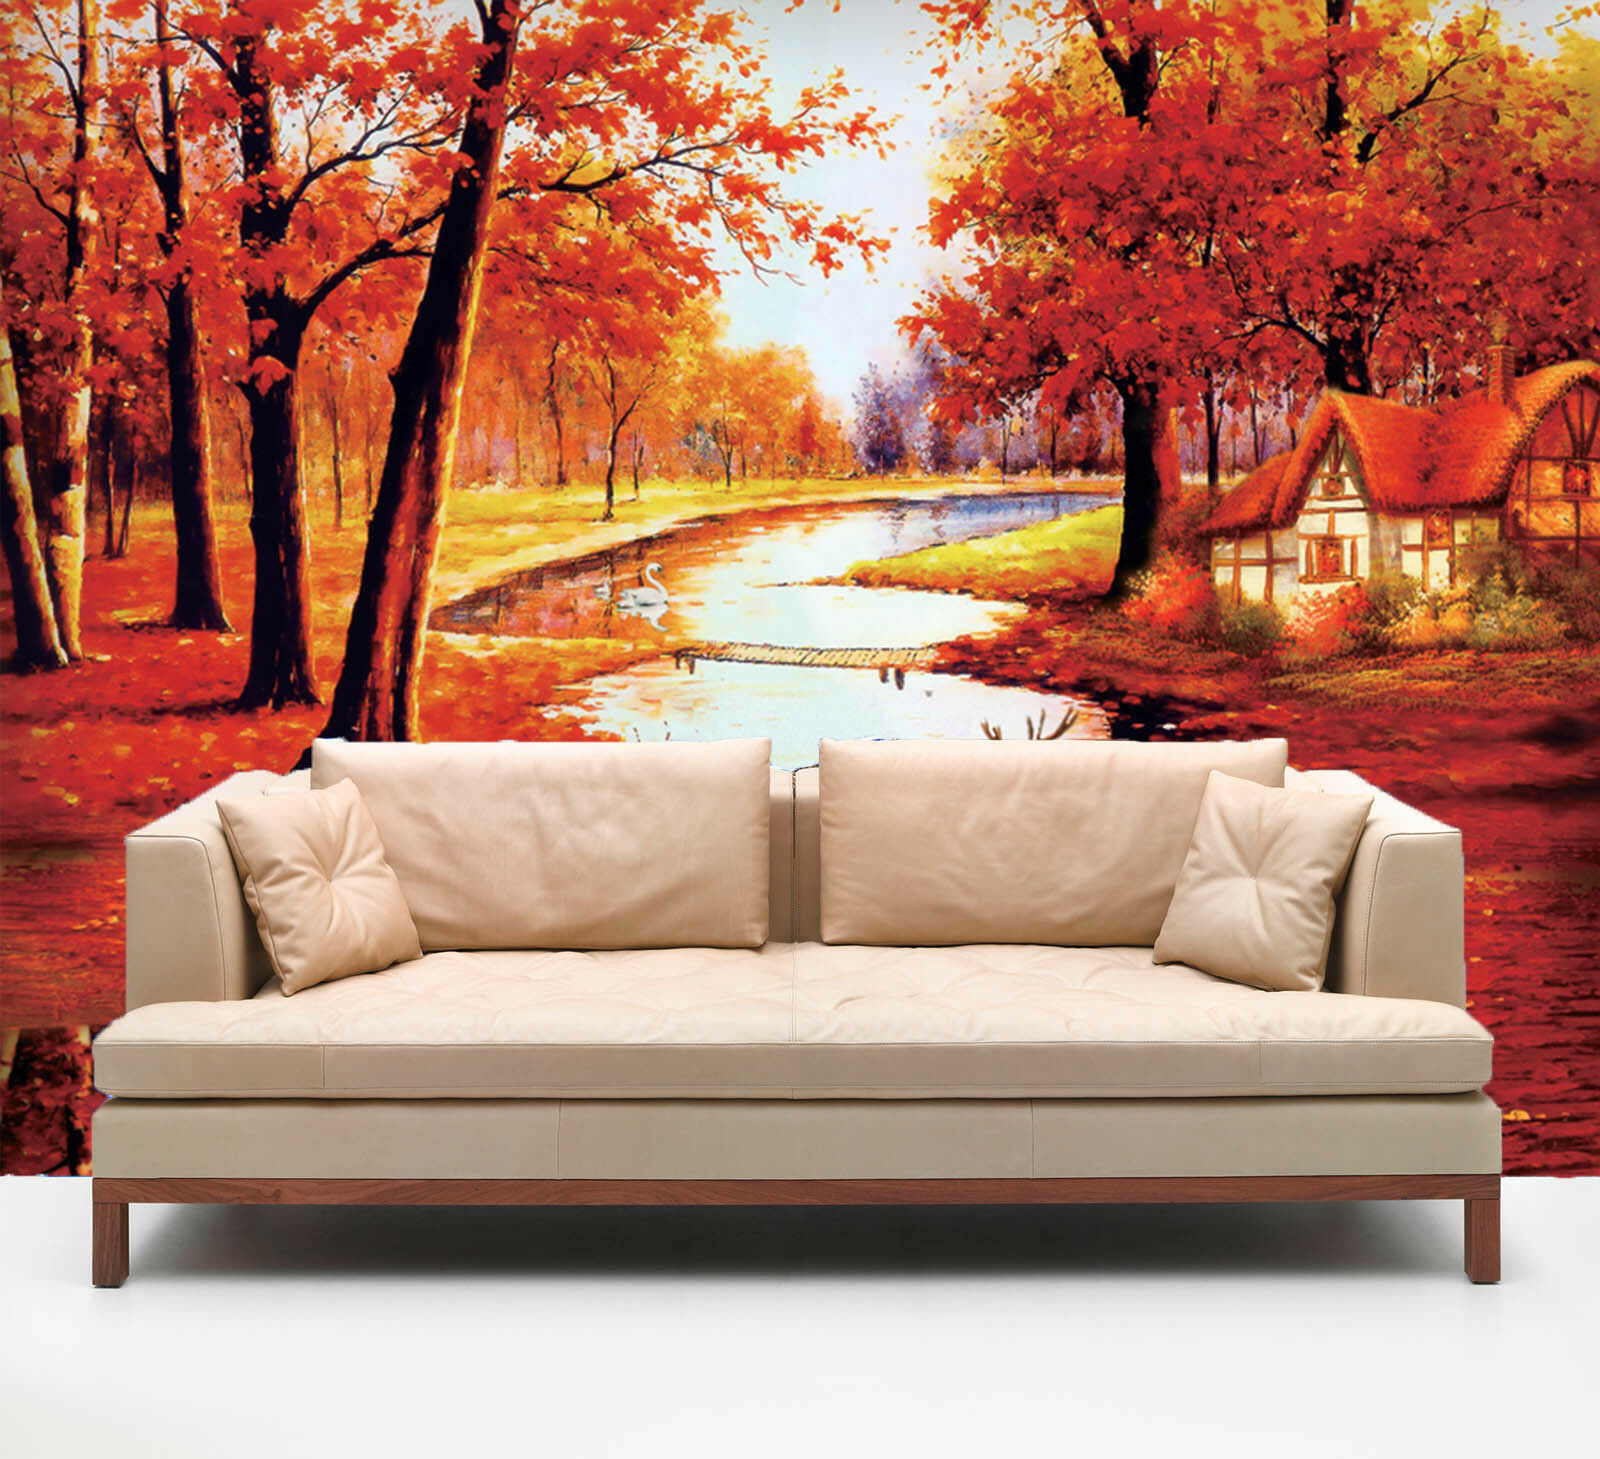 3D Maple Tree 459 Wallpaper Murals Wall Print Wallpaper Mural AJ WALL AU Summer